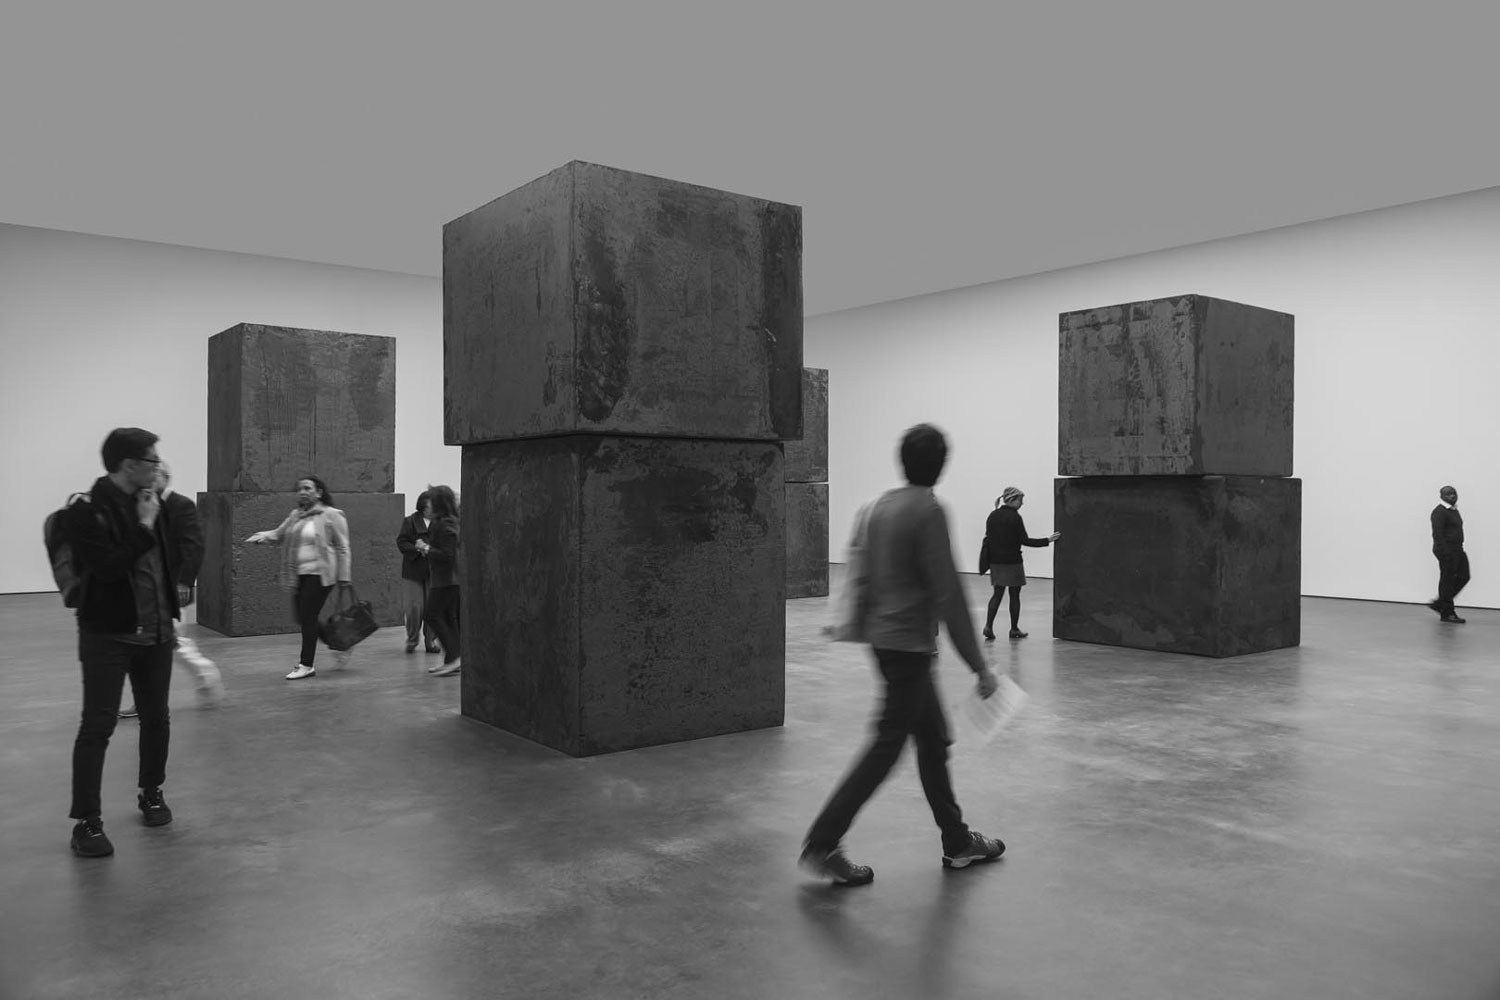 Visitors at the exhibition Richard Serra: Equal at 537 West 20th Street, New York in dated 2015.